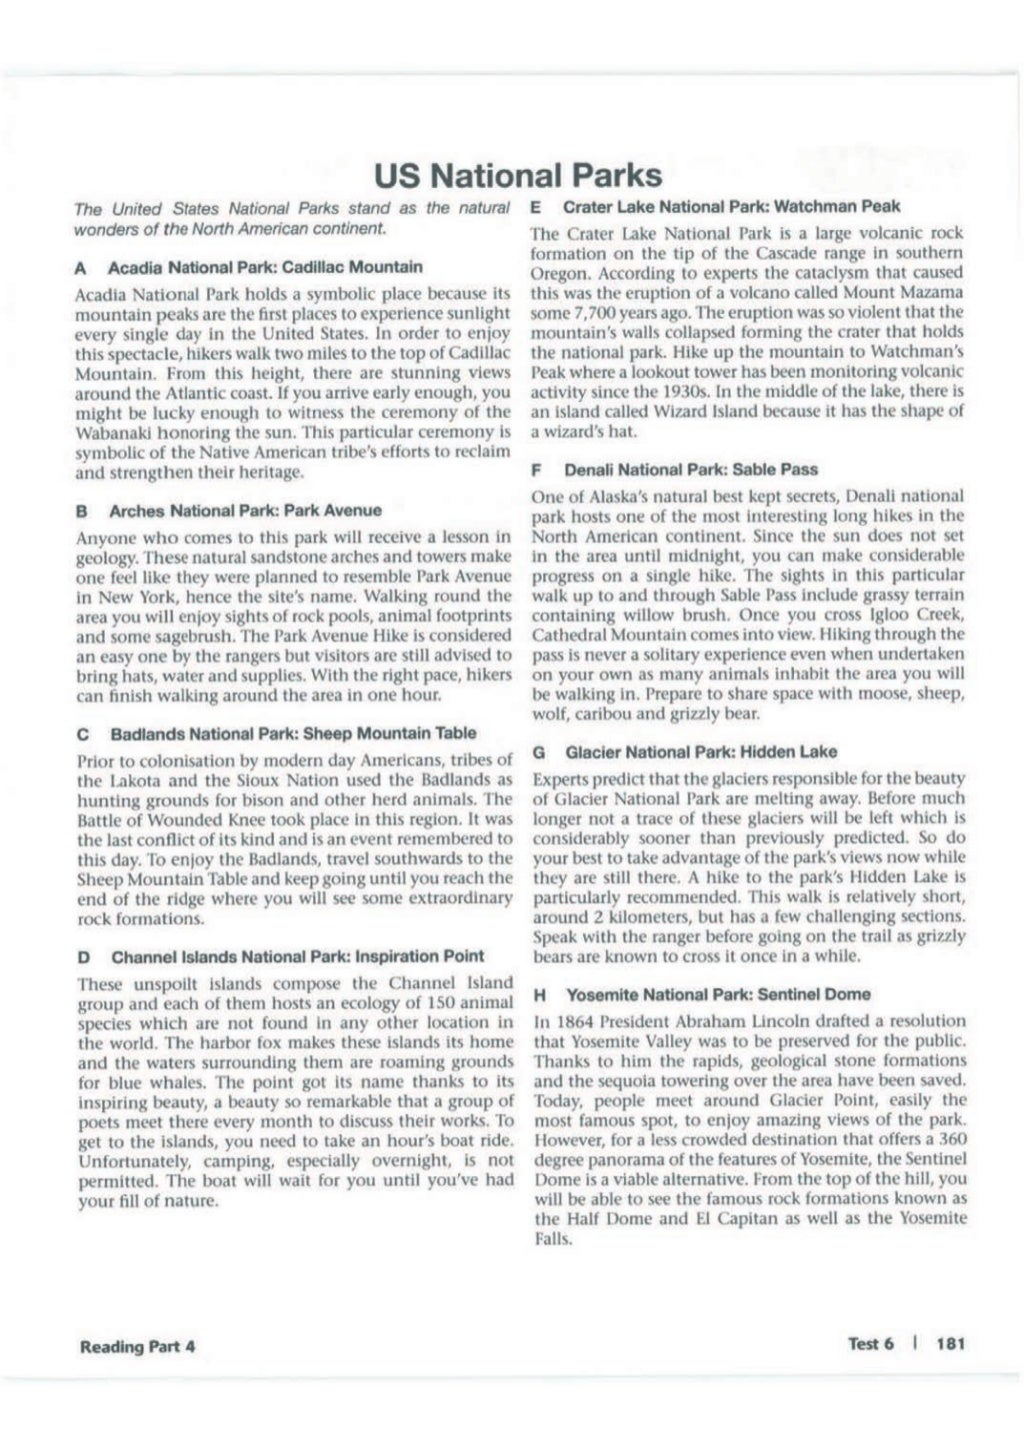 Advanced trainer 6 practice tests with answers book4joy (1) page 182